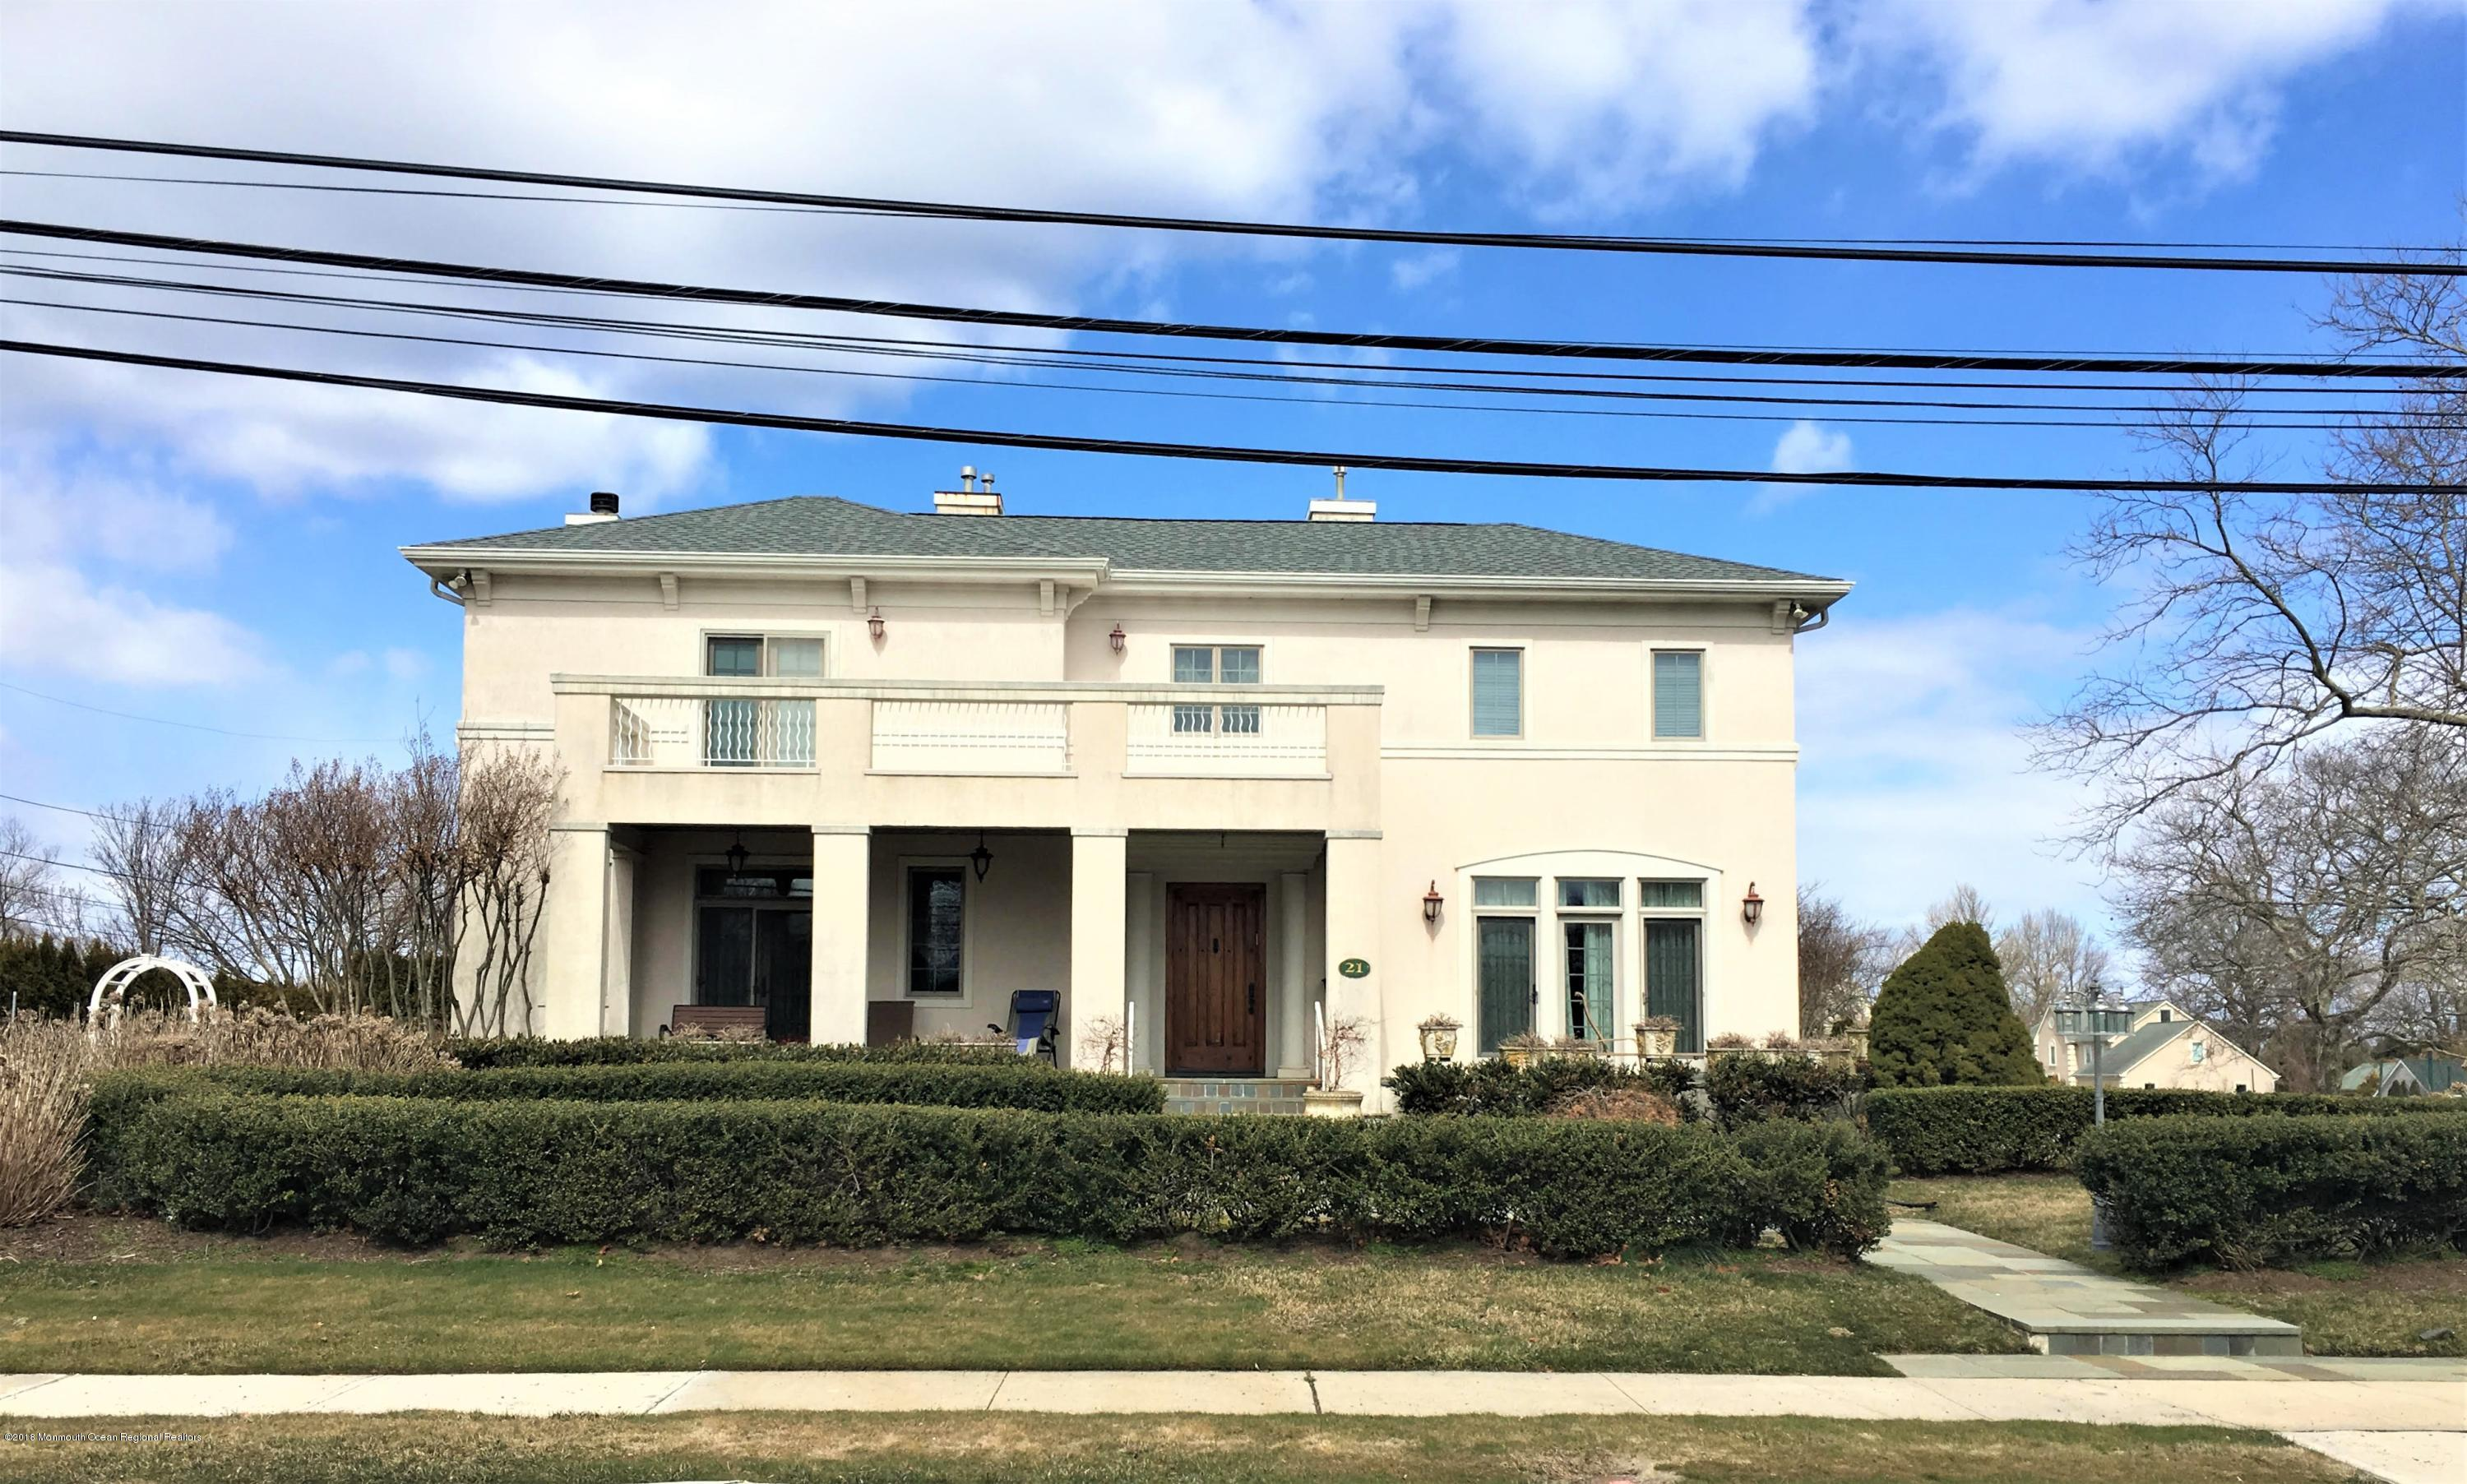 Photo of 21 Lawrence Avenue, Deal, NJ 07723